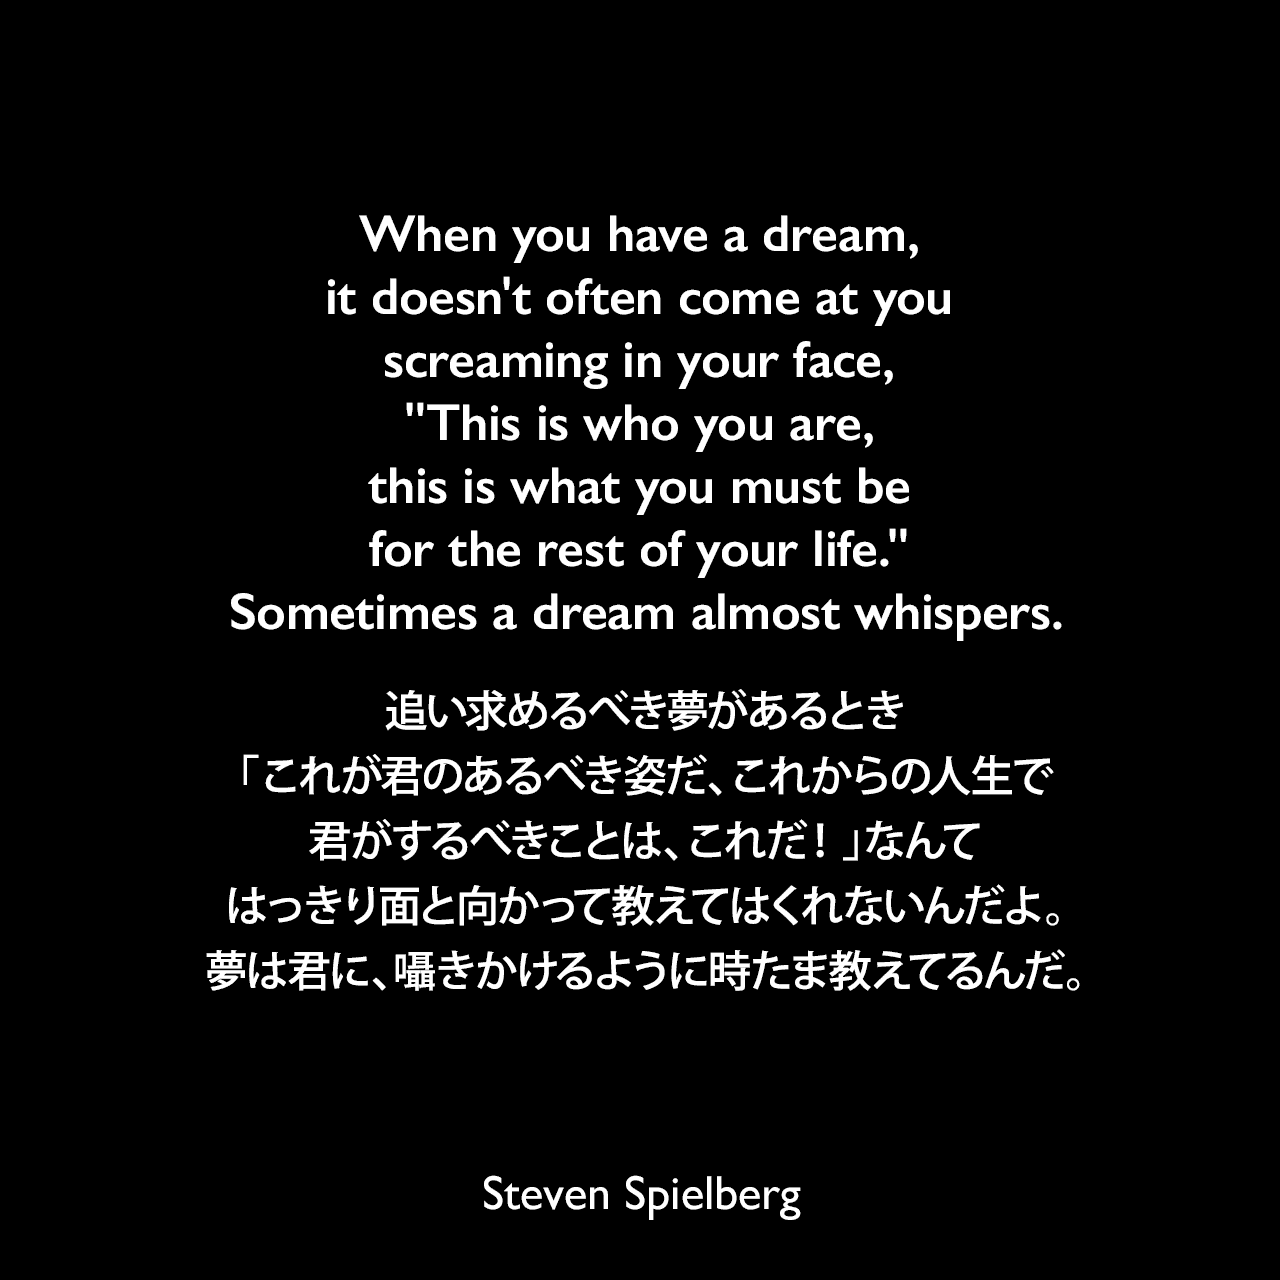 When you have a dream, it doesn't often come at you screaming in your face,